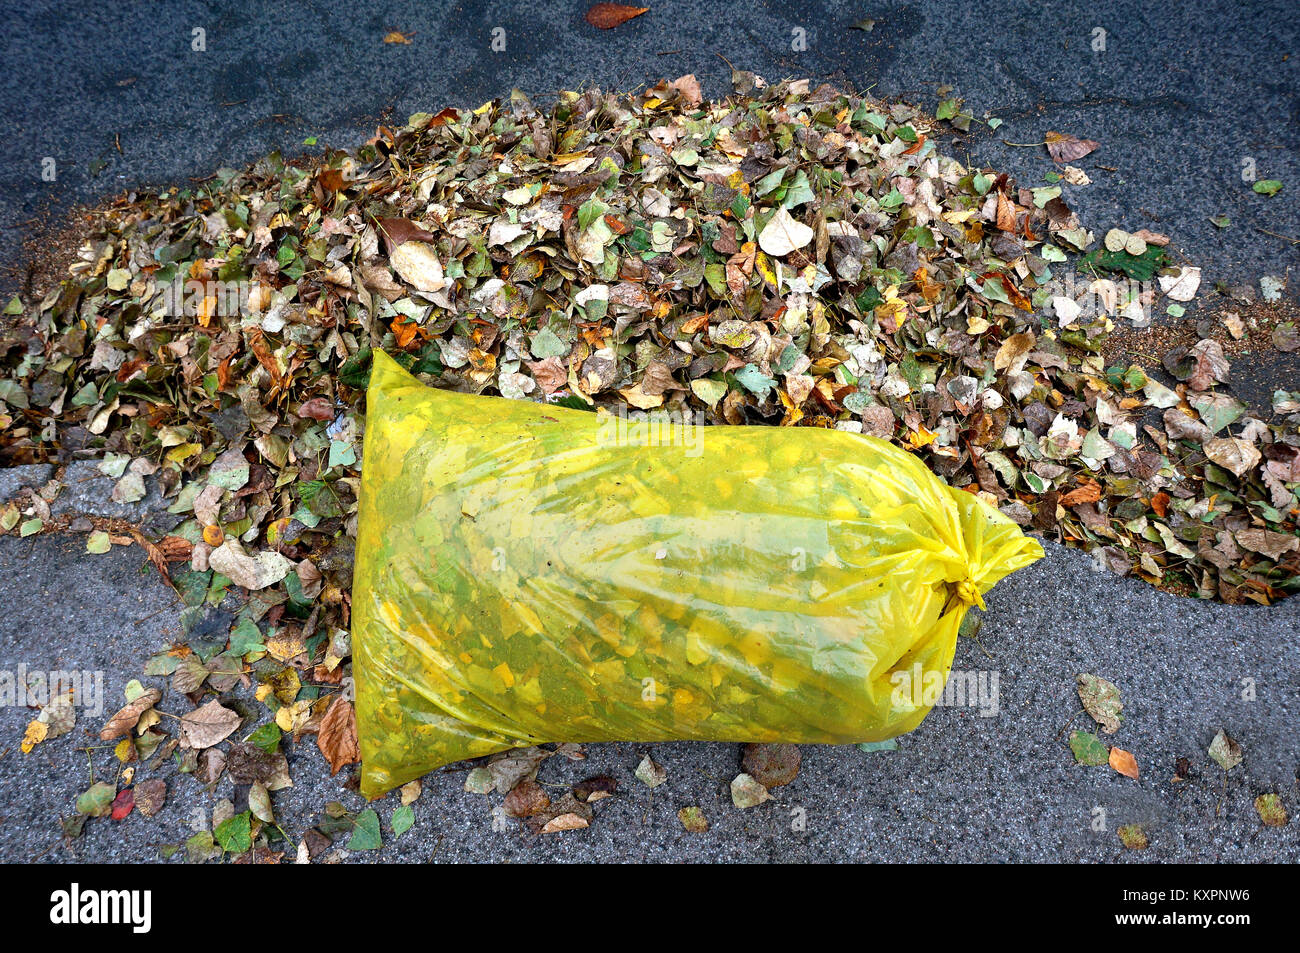 streets filled with garbage how to fix